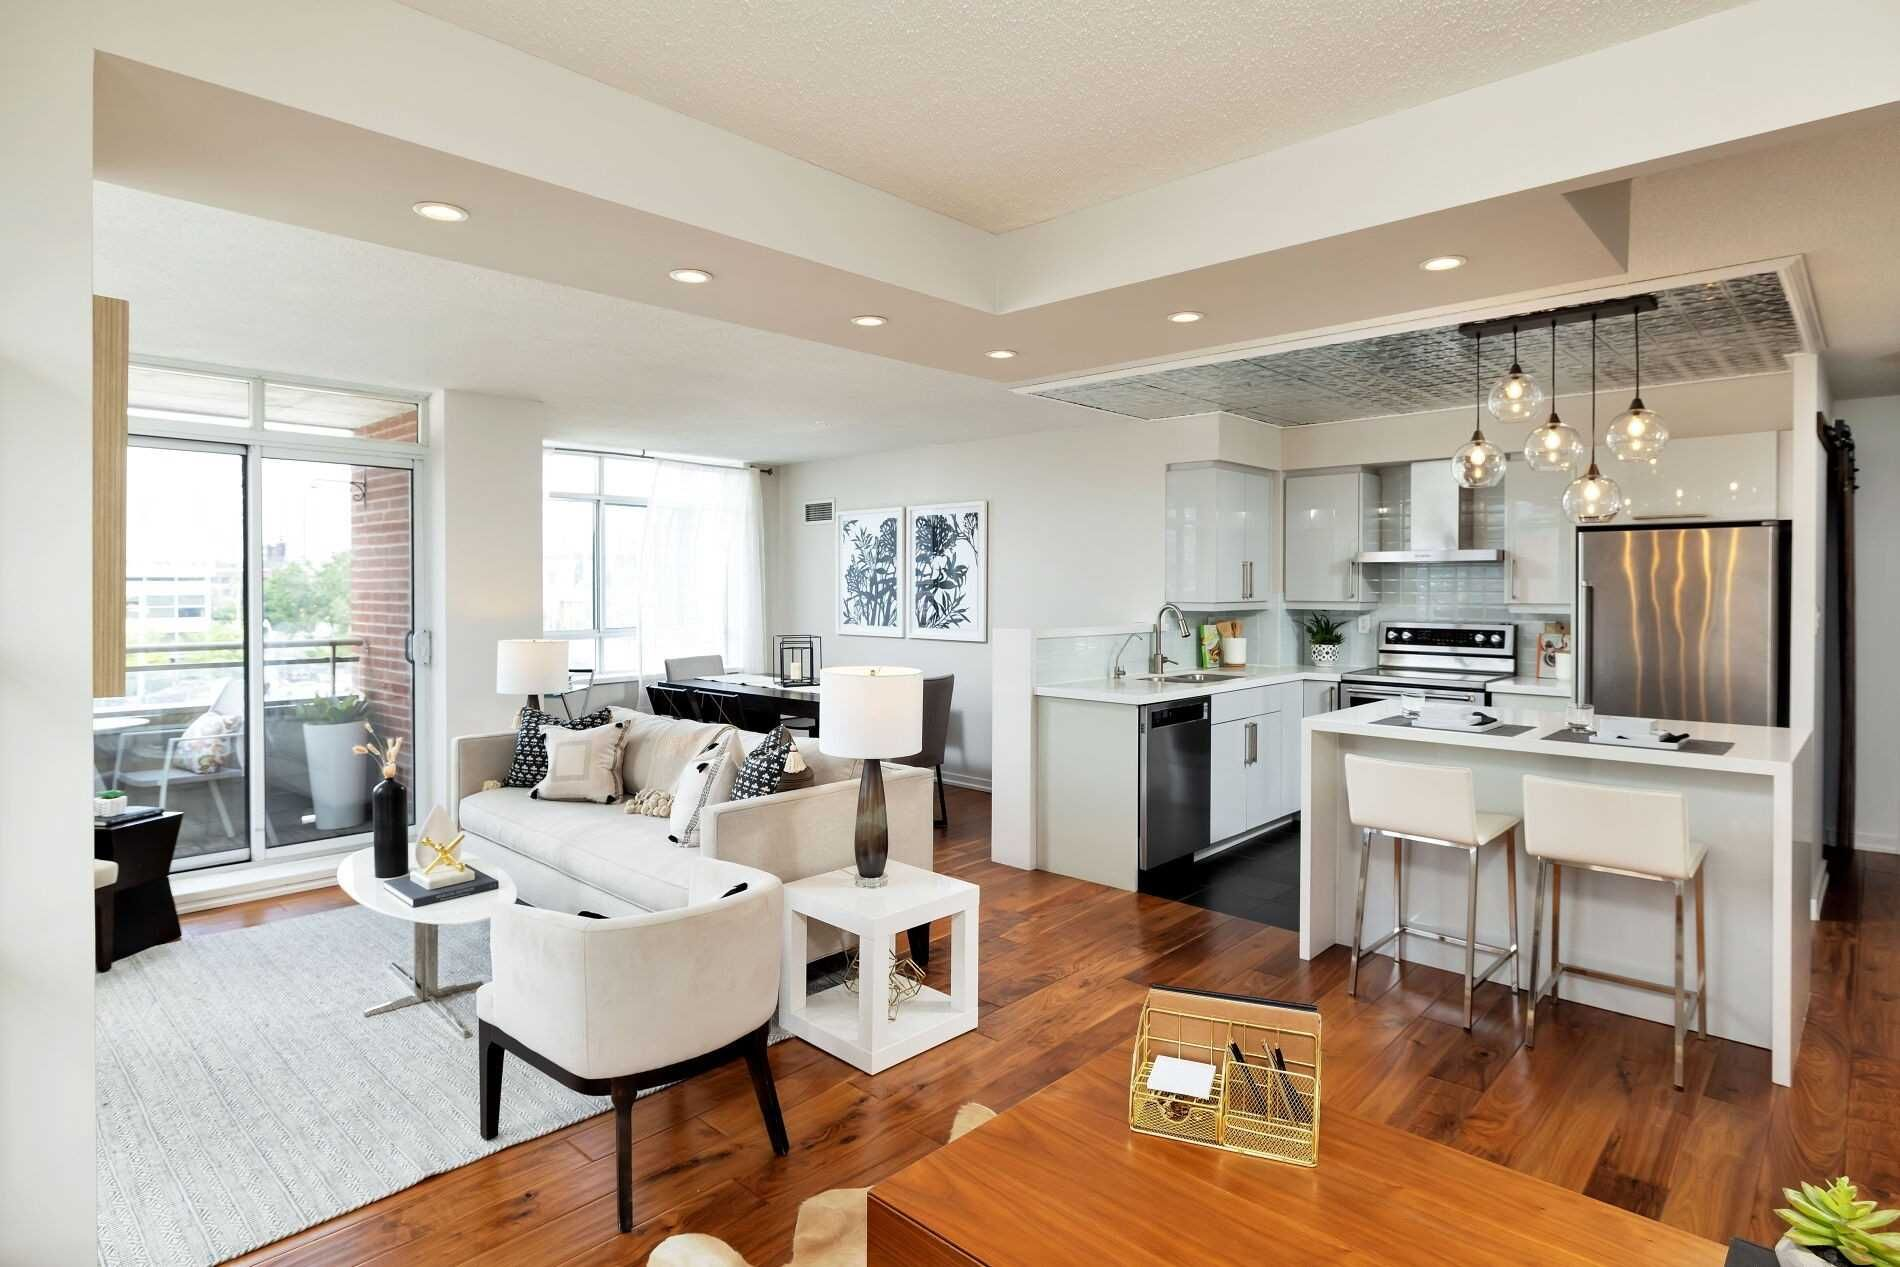 80 Mill St, unit 509 for sale in Toronto - image #2